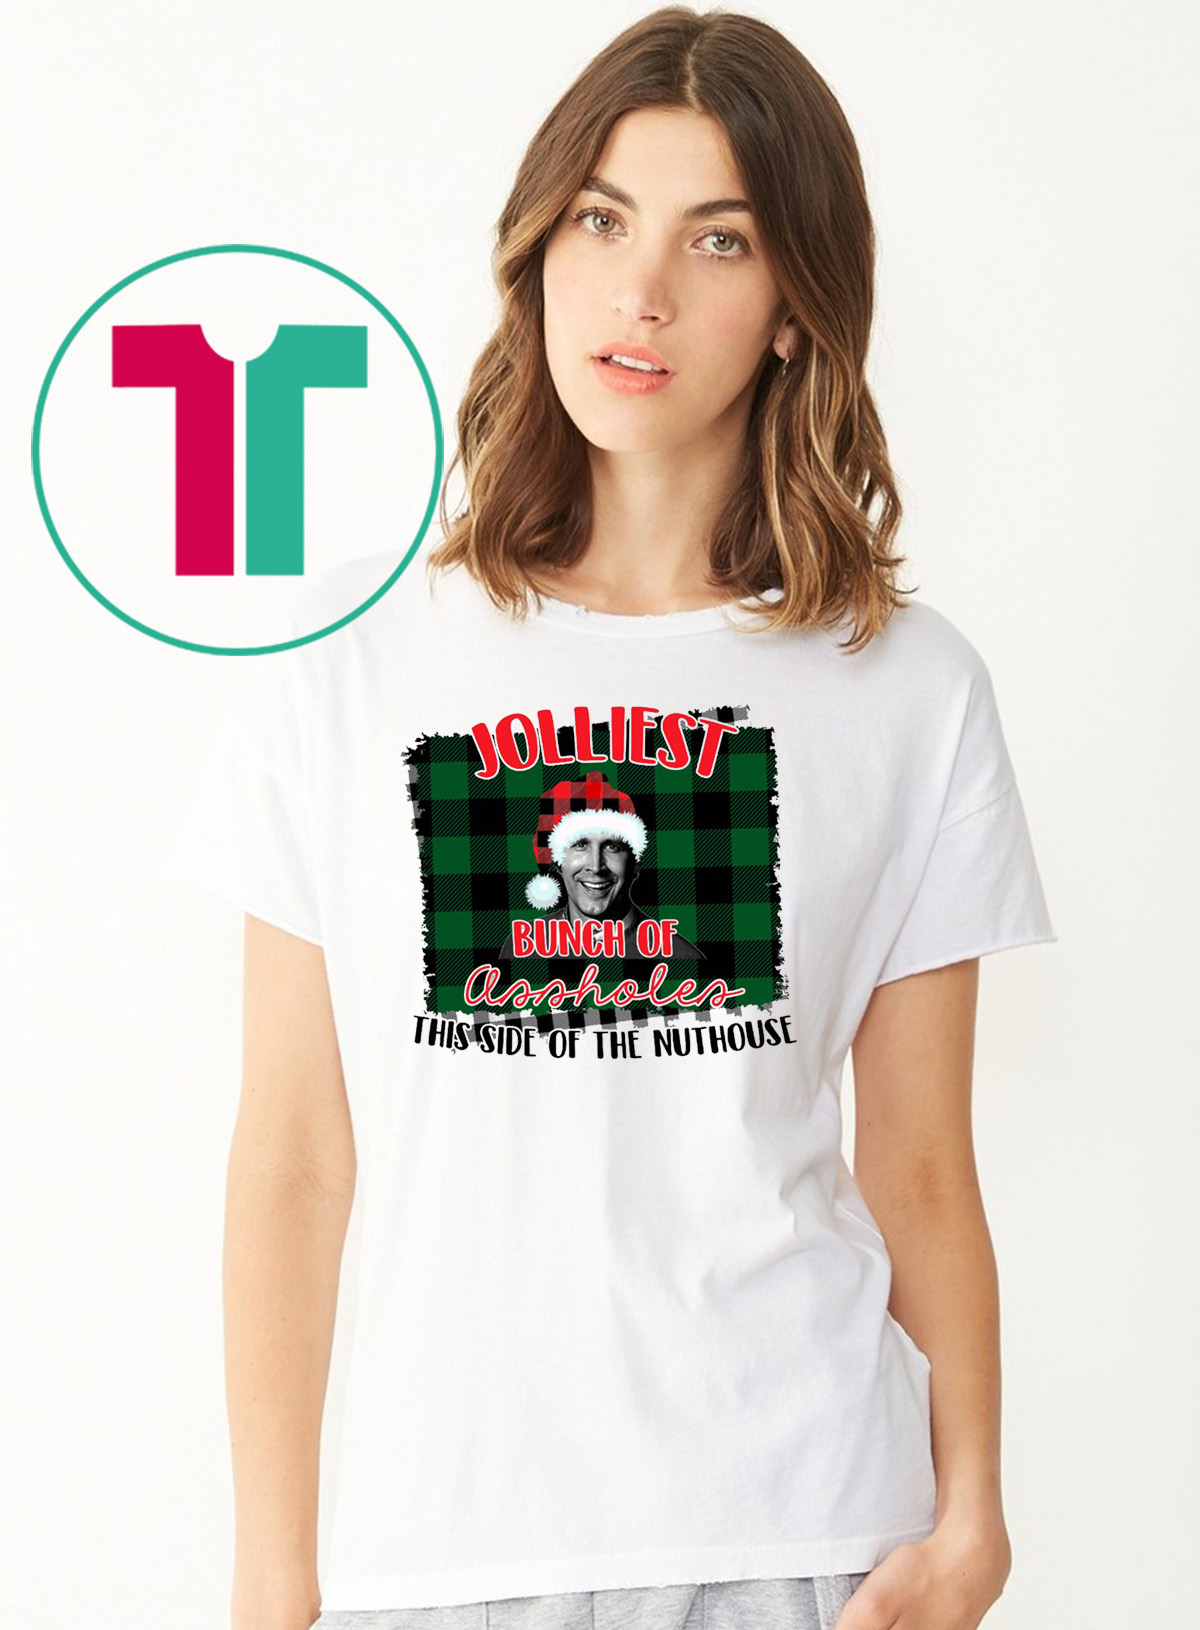 Christmas Vacation Shirts.Jolliest Bunch Of Assholes This Side Of The Nuthouse National Lampoon S Christmas Vacation Shirt Reviewshirts Office